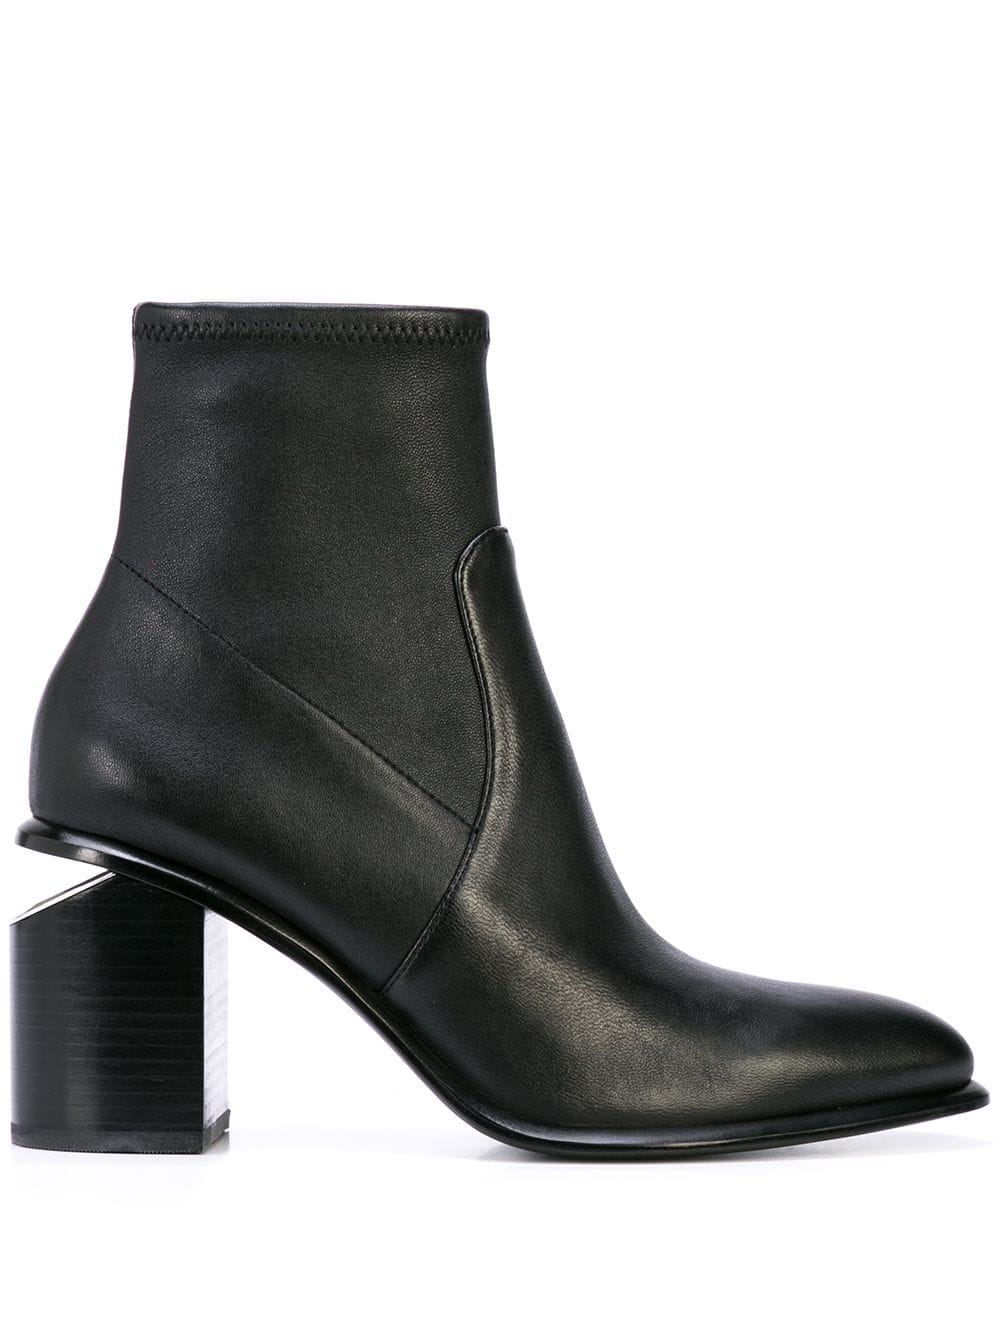 ALEXANDER WANG WOMEN ANNA STRETCH BOOTS